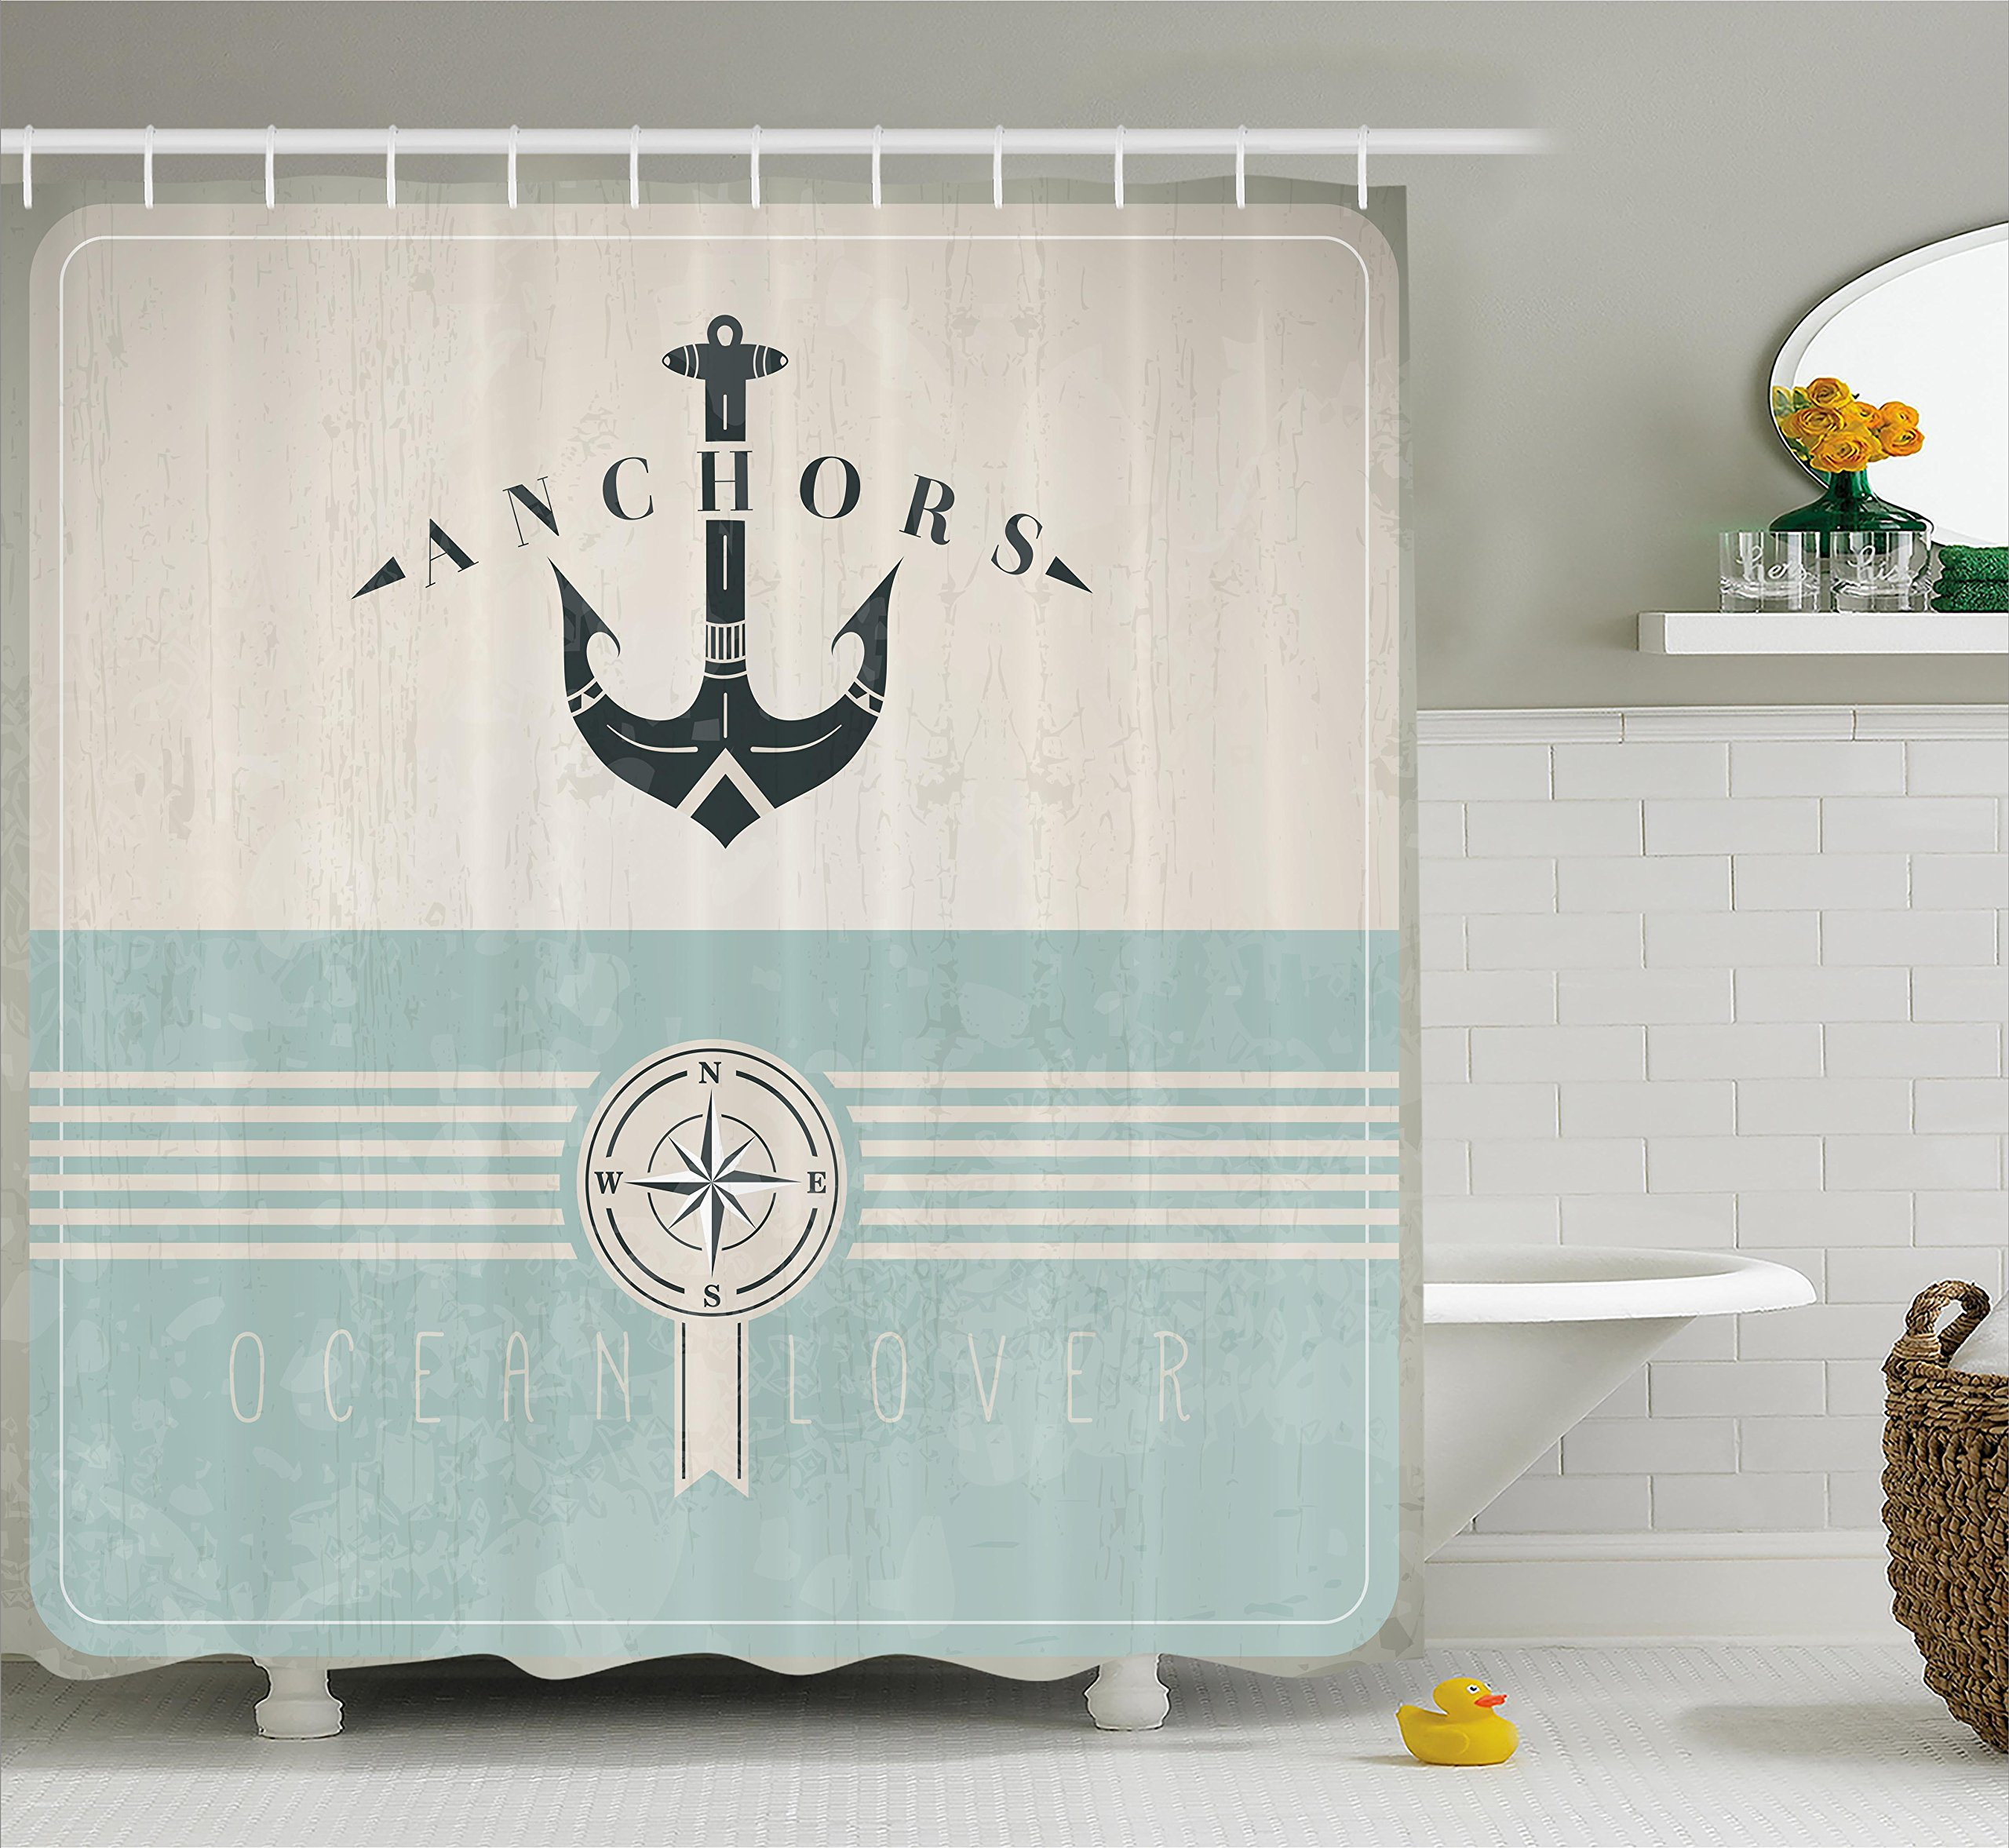 Ambesonne Nautical Shower Curtain by, Aged Ocean Lover Phrase with Anchor Figure and Compass Marine Adventure Design, Fabric Bathroom Decor Set with Hooks, 75 Inches Long, Beige Blue